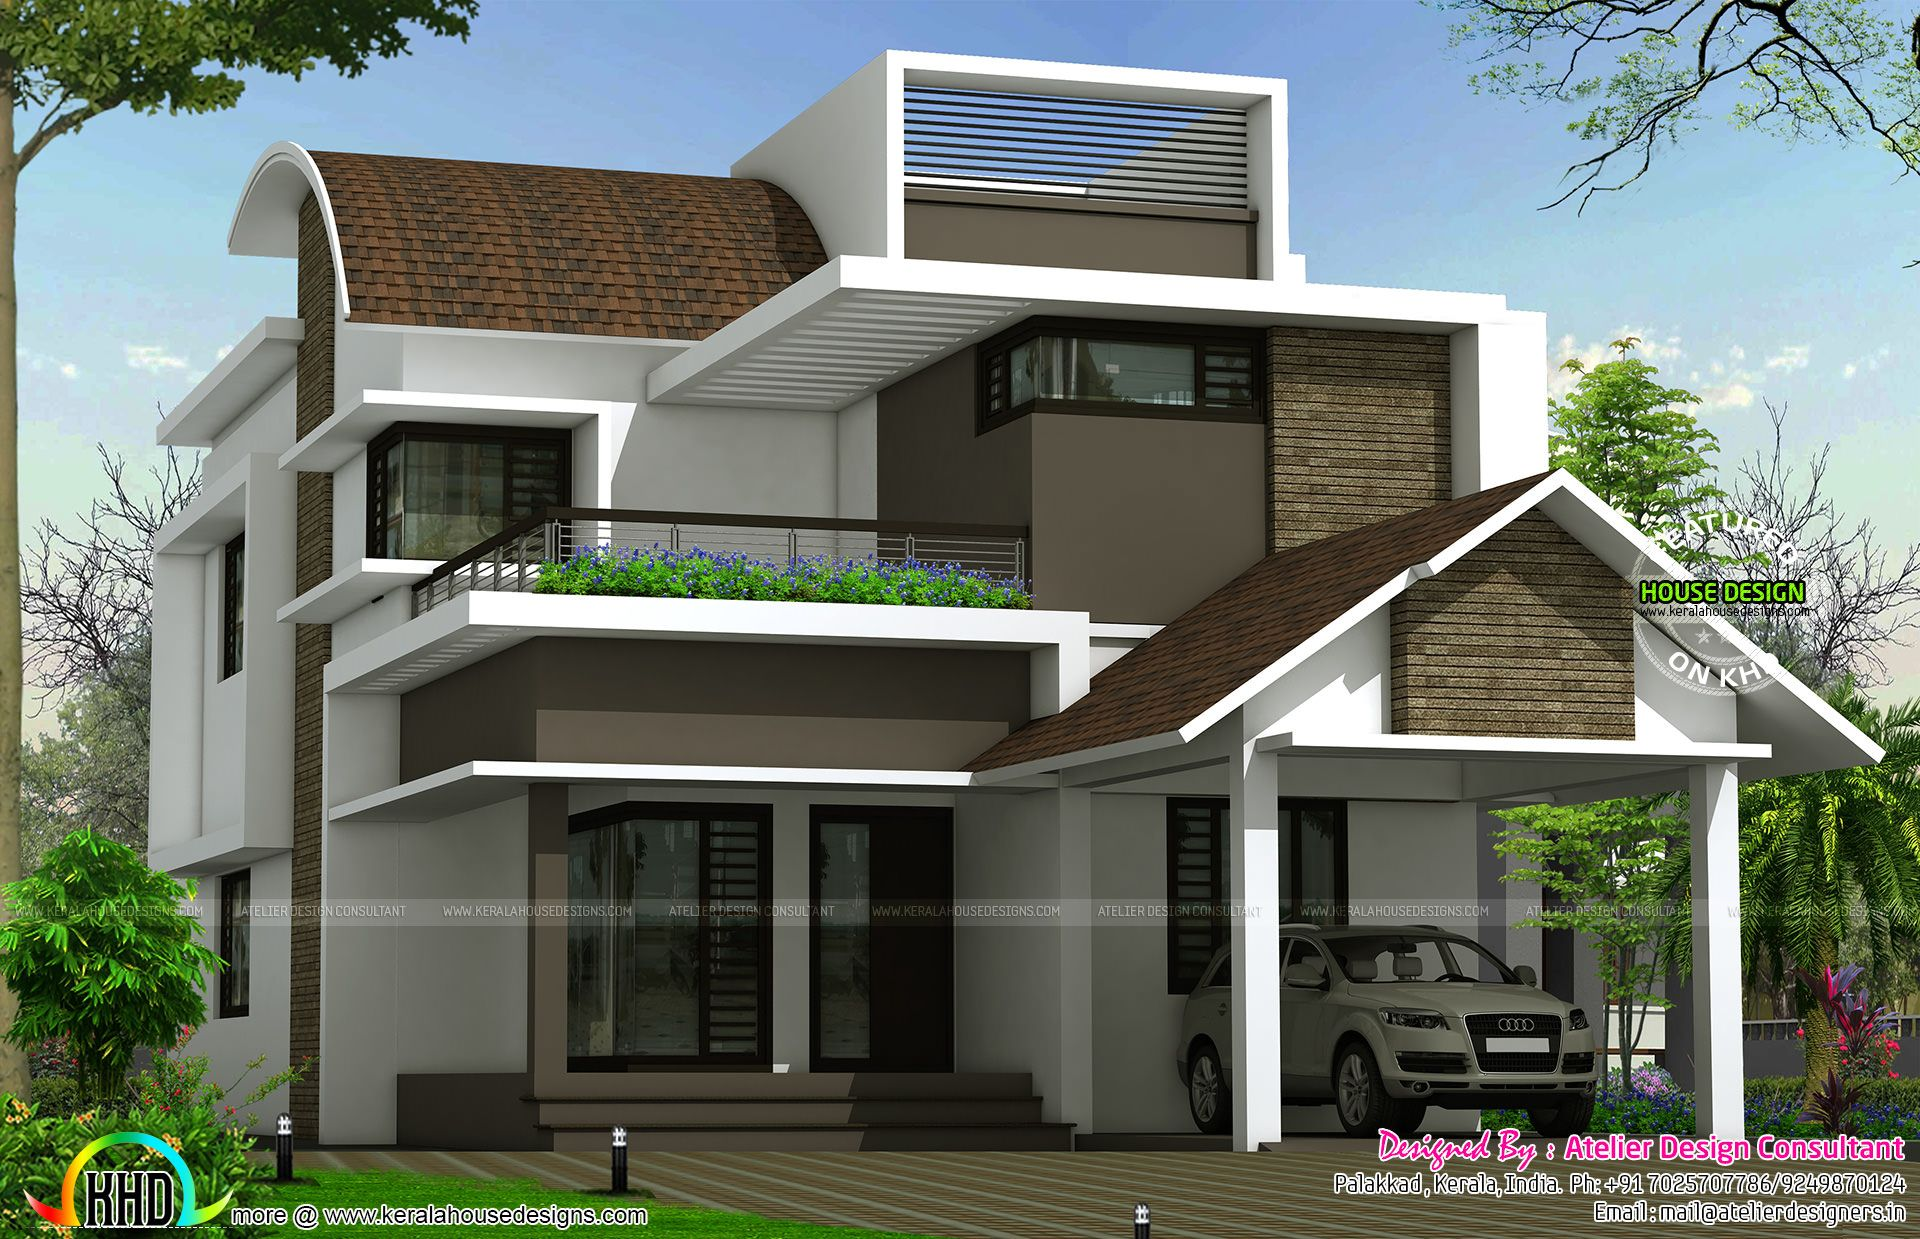 Curved Roof Mix Contemporary 2620 Sq Ft Home Modern House Plans